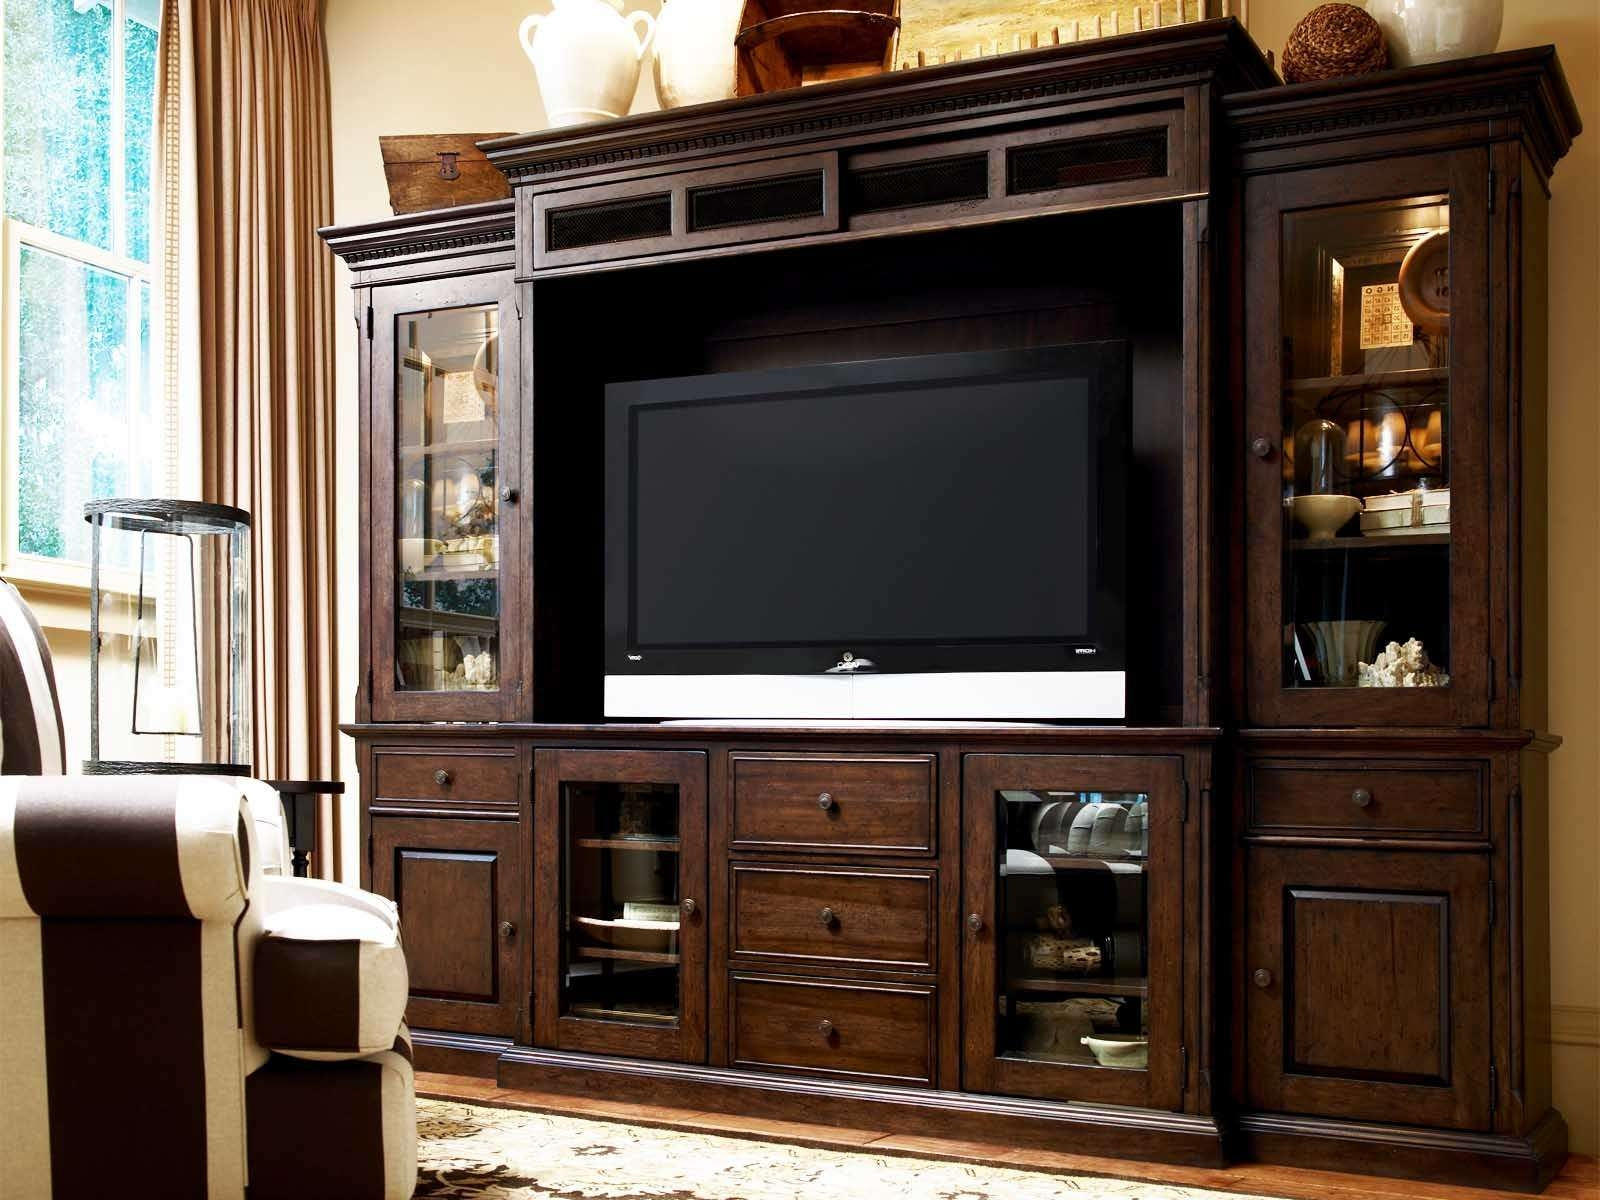 Enclosed Tv Cabinet With Doors Choice Image – Doors Design Ideas In Enclosed Tv Cabinets With Doors (View 4 of 20)